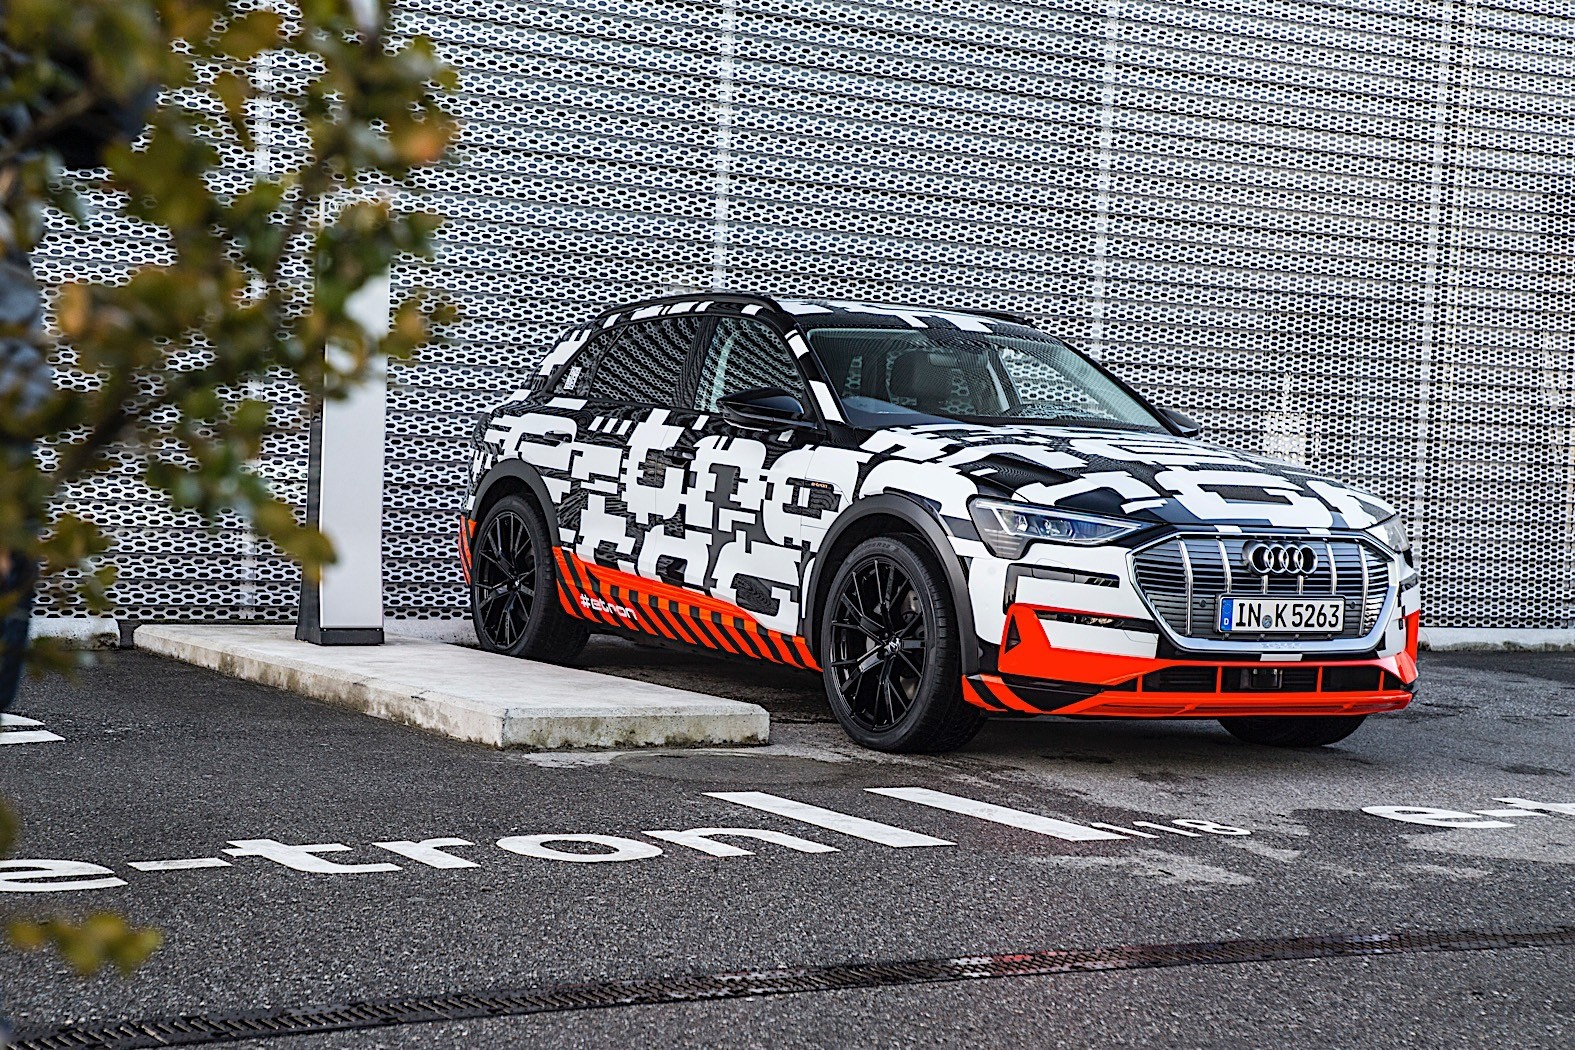 audi-e-tro​n-electric​-suv-start​ing-price-​revealed-s​hould-make​-things-in​teresting-​124332_1